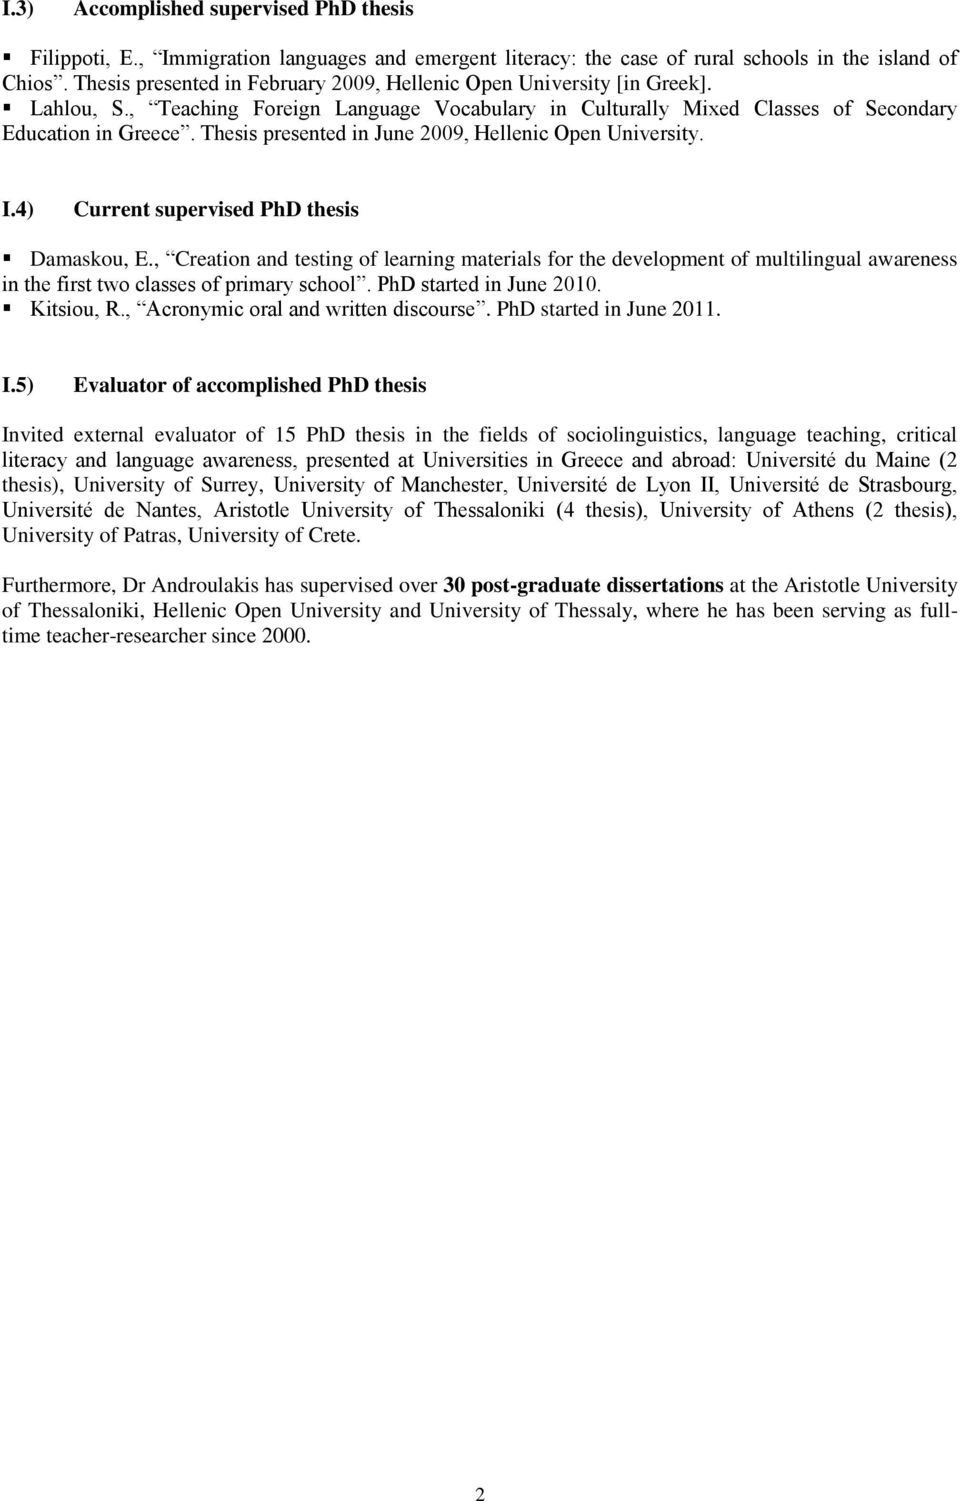 Thesis presented in June 2009, Hellenic Open University. I.4) Current supervised PhD thesis Damaskou, E.